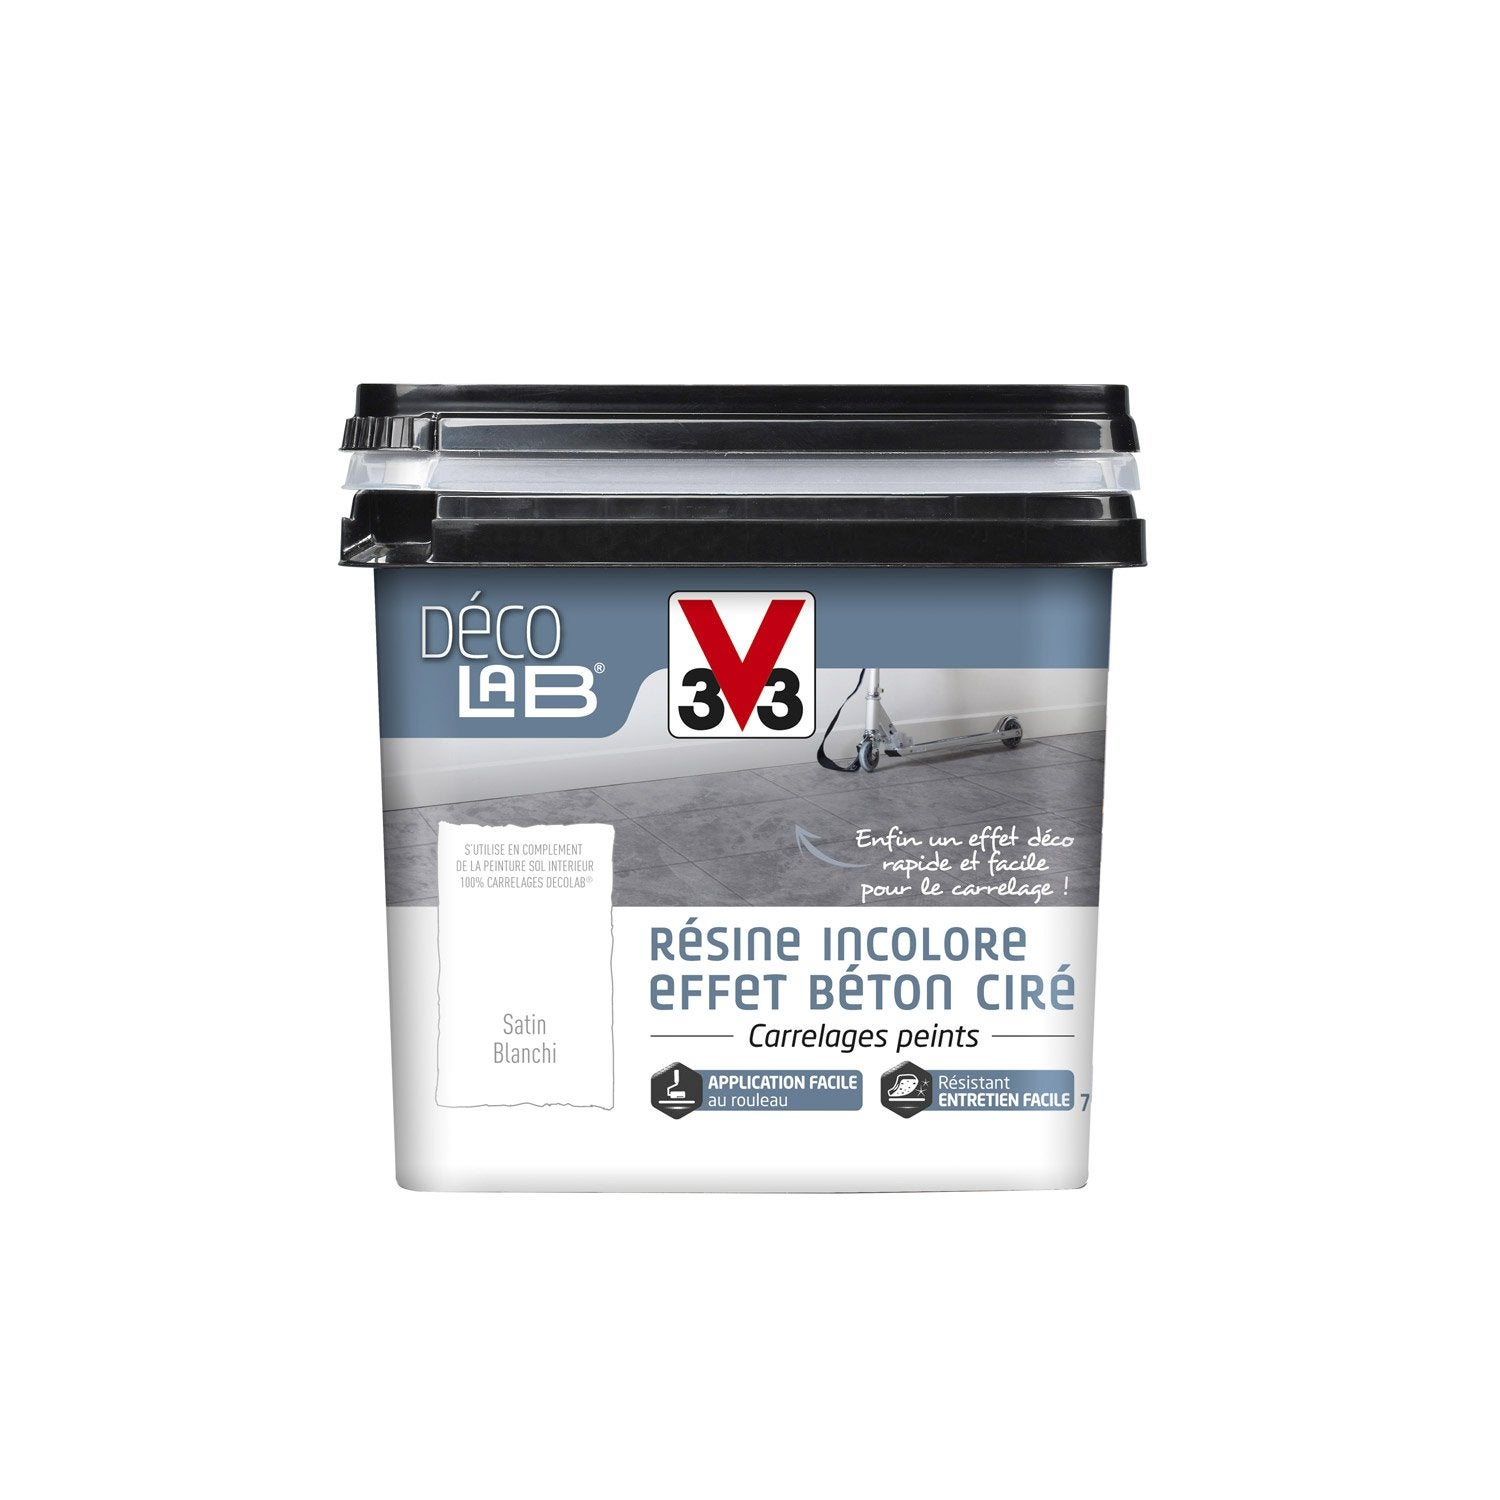 Peinture sol int rieur decolab r sine de finition v33 blanc leroy merlin for Peinture renovation carrelage sol v